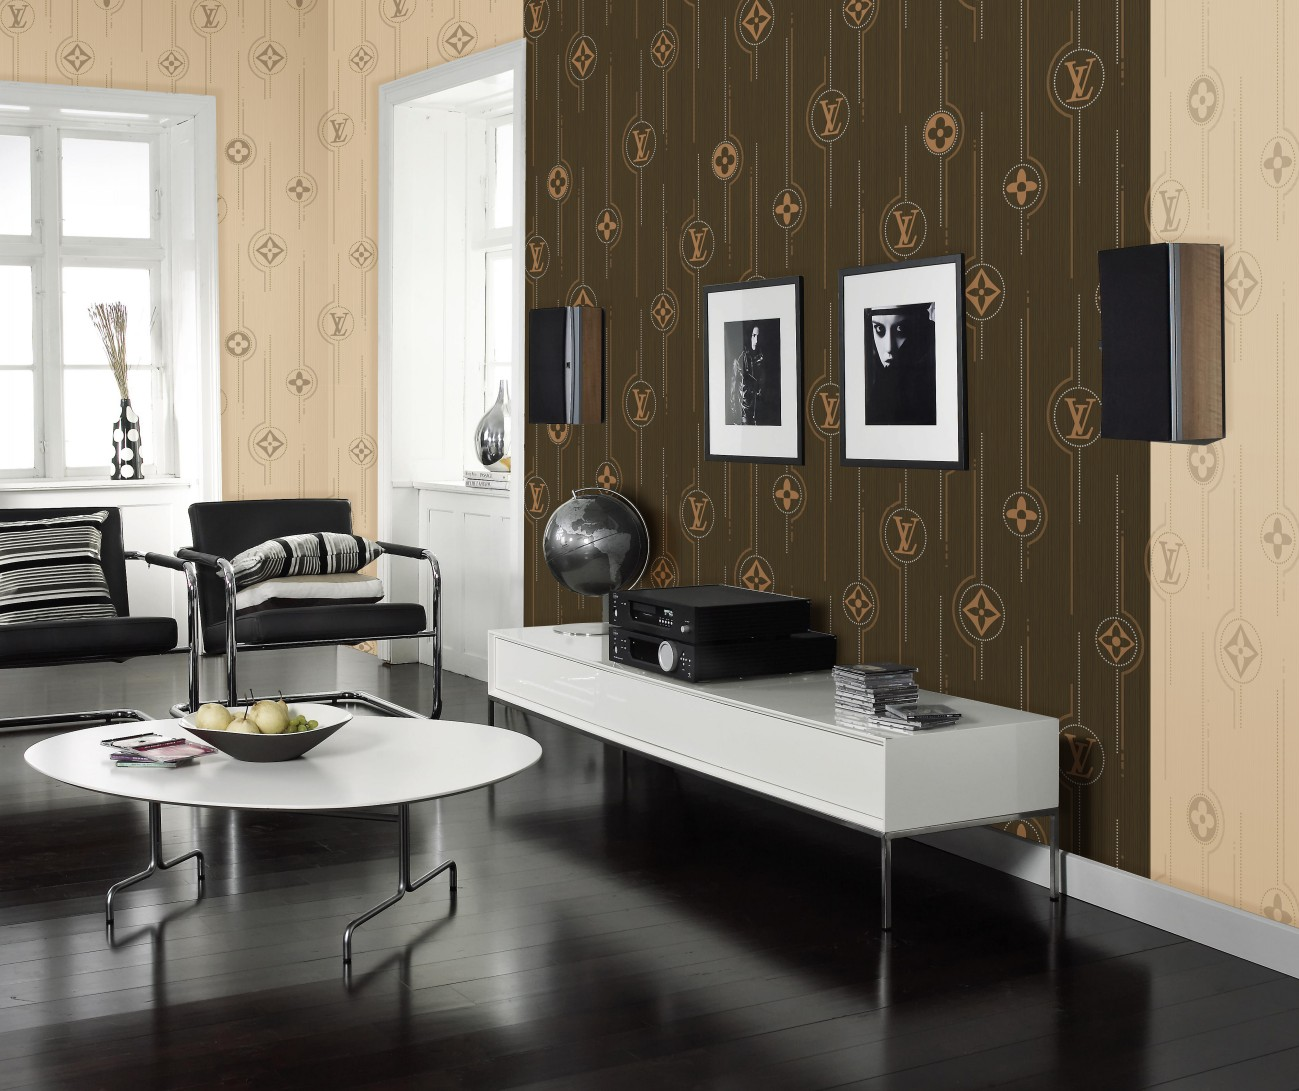 MAGNIFICENT-non-woven foaming sprinkled gold wallpaper